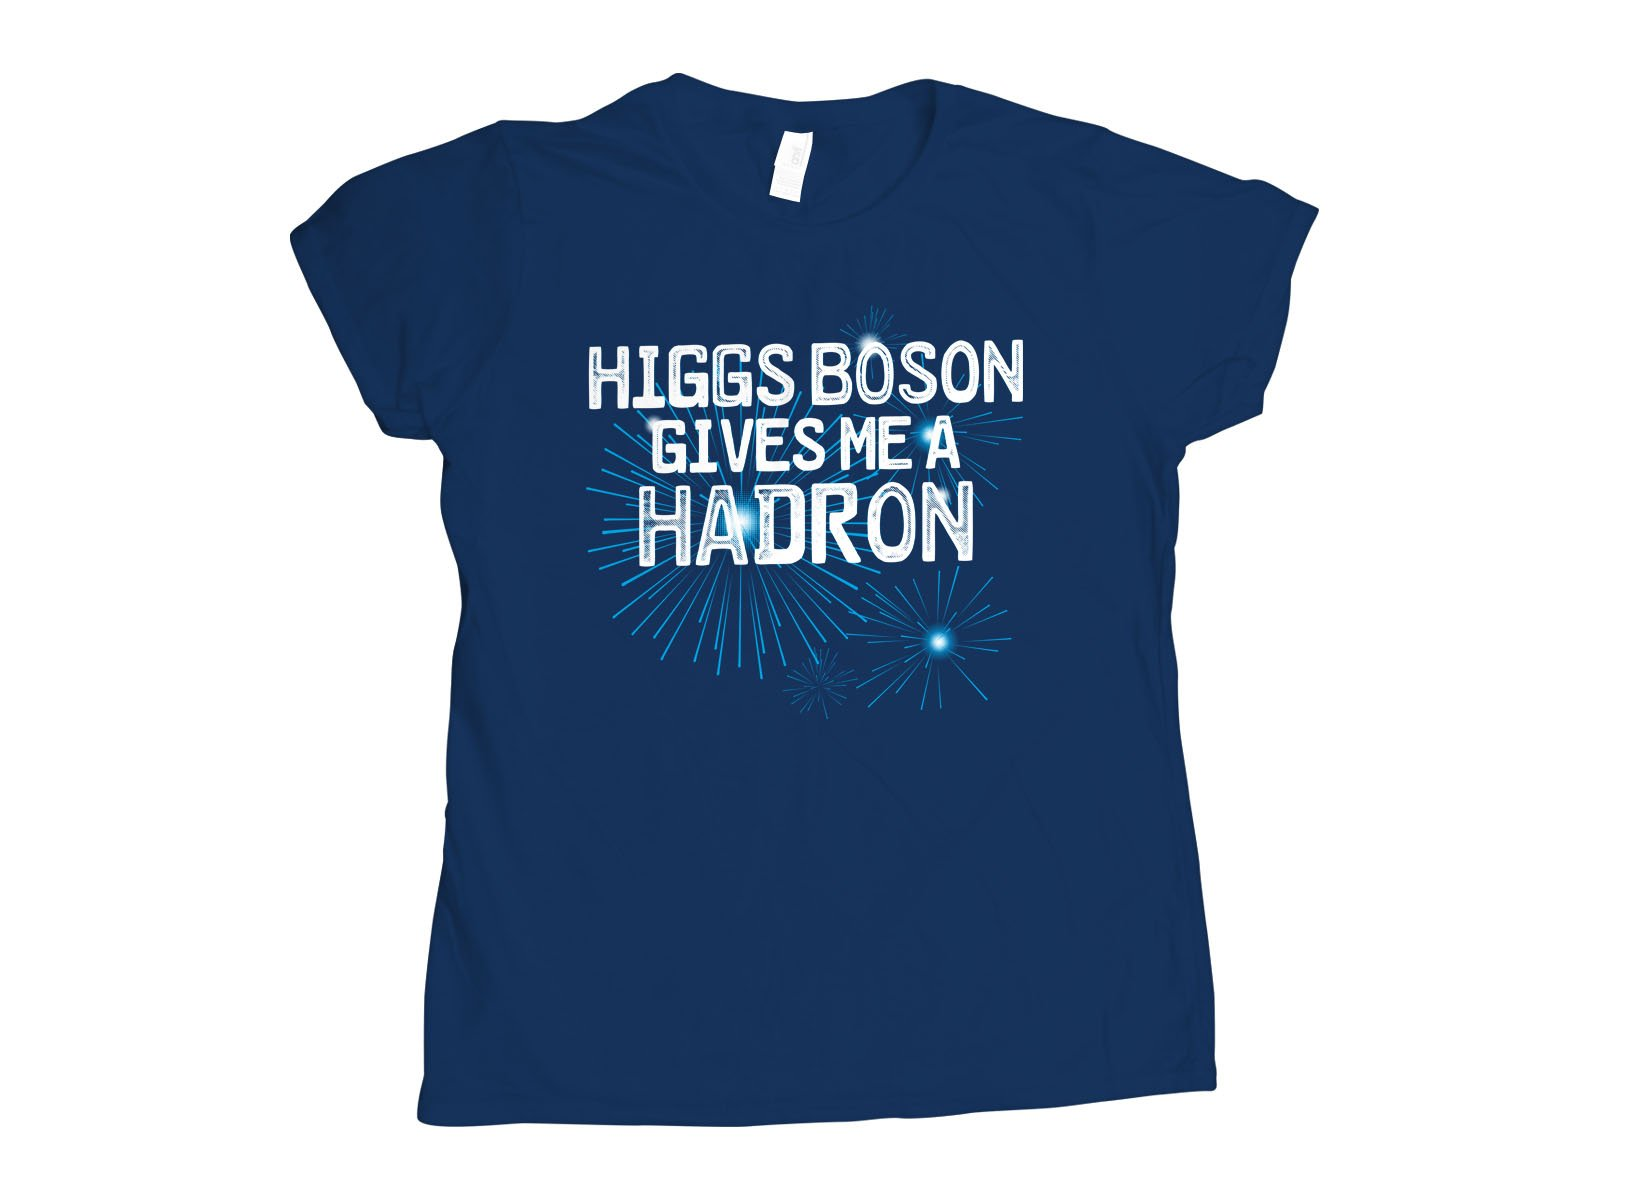 Higgs Boson Gives Me A Hadron on Womens T-Shirt